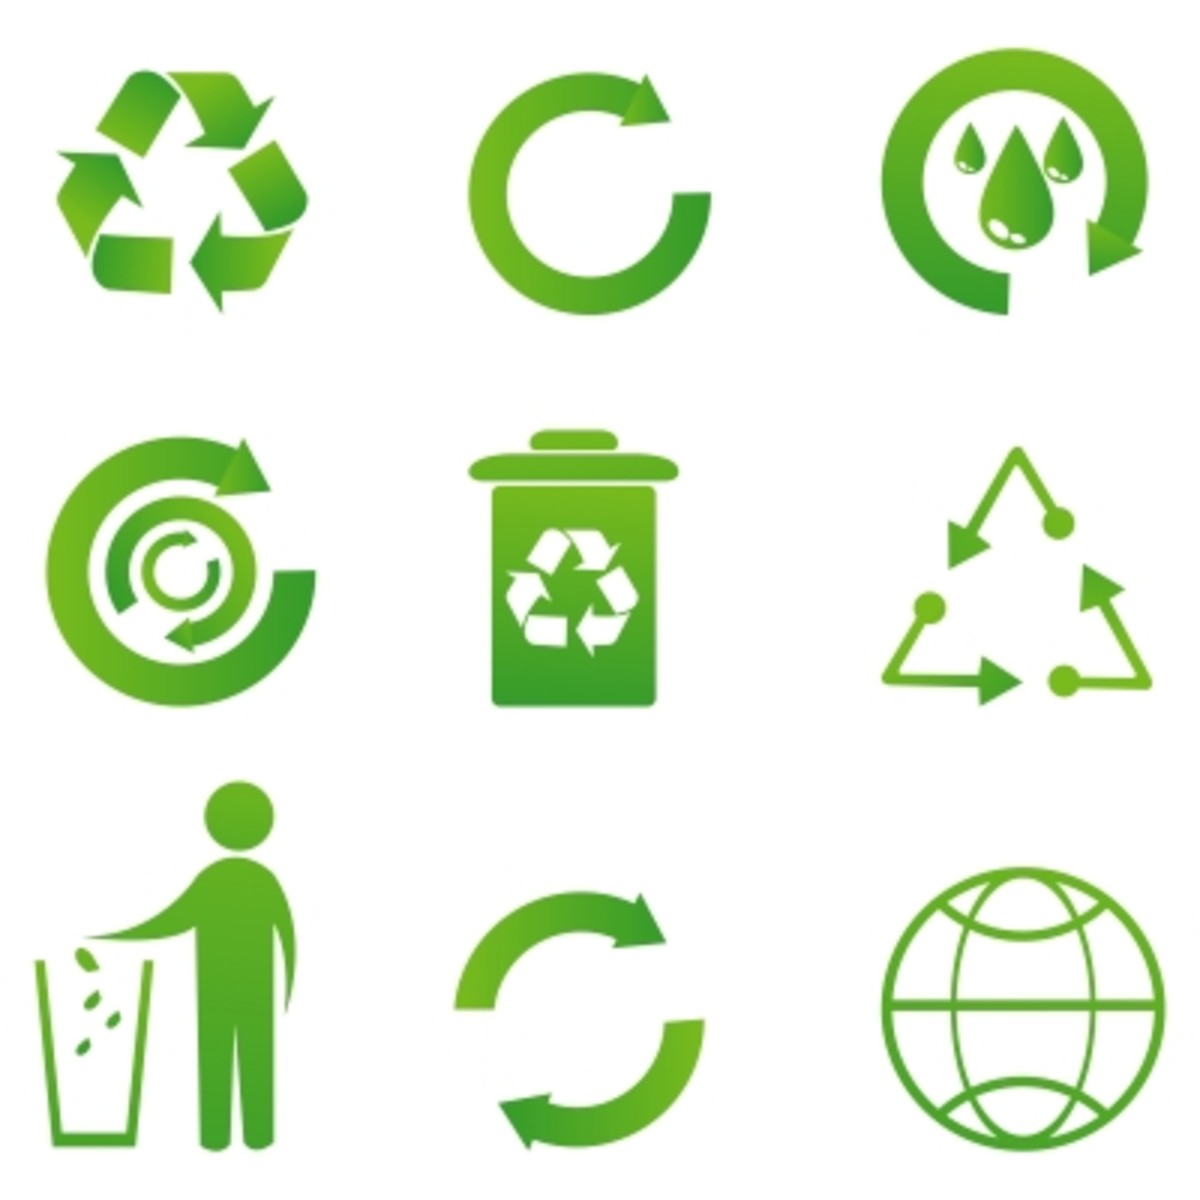 What Is Recycling? Learning About the Recycling Process